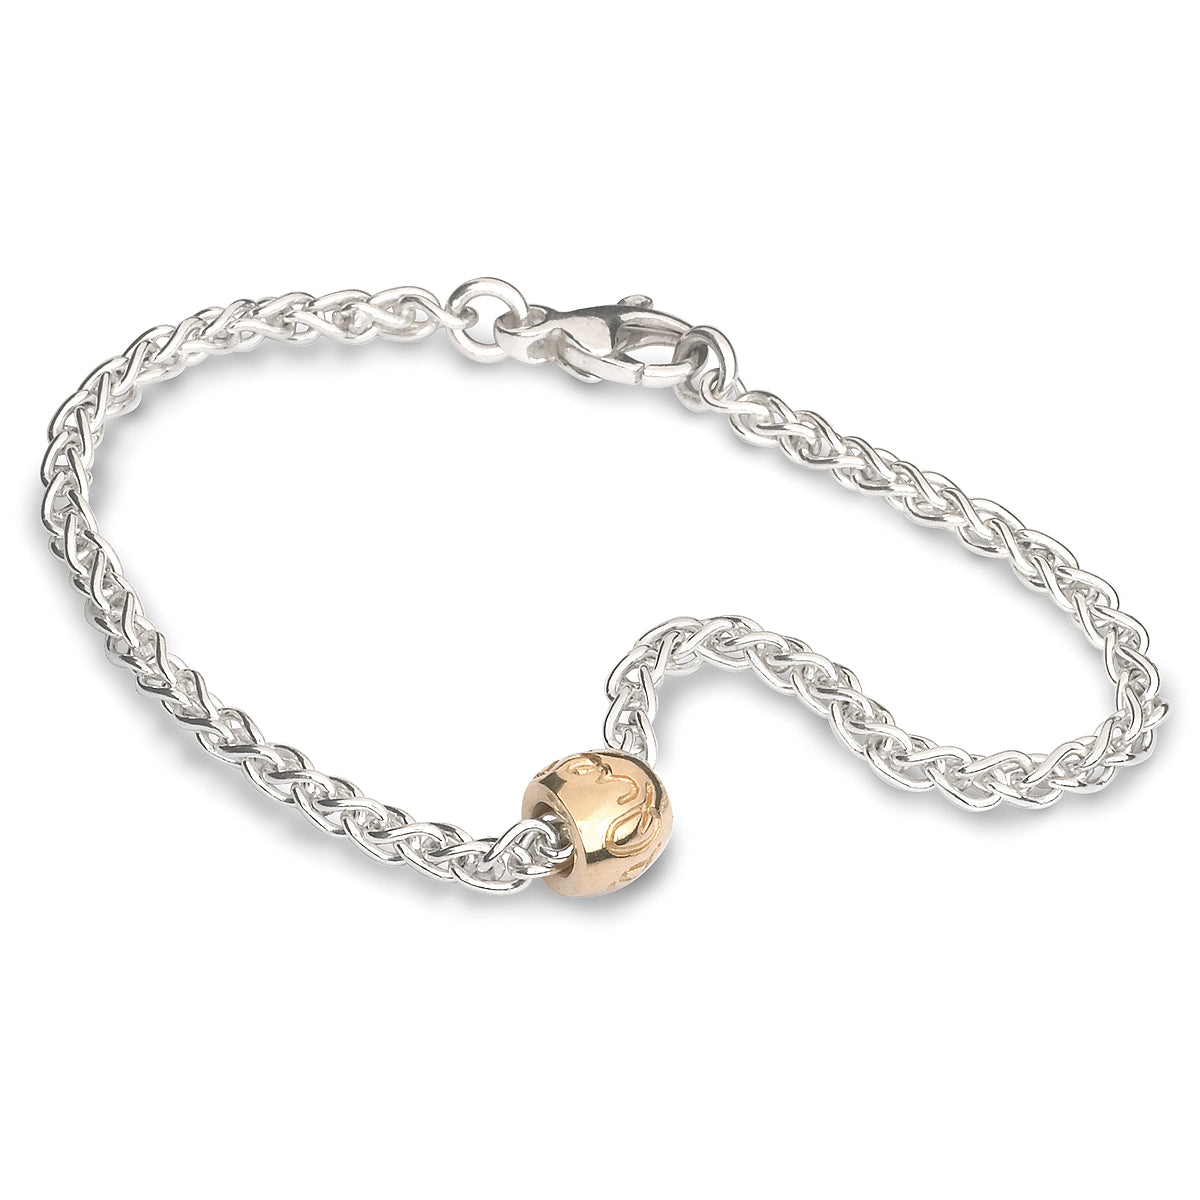 Que Sera Silver & Gold Worry Bead Bracelet Mindfulness Gift Scarlett Jewellery